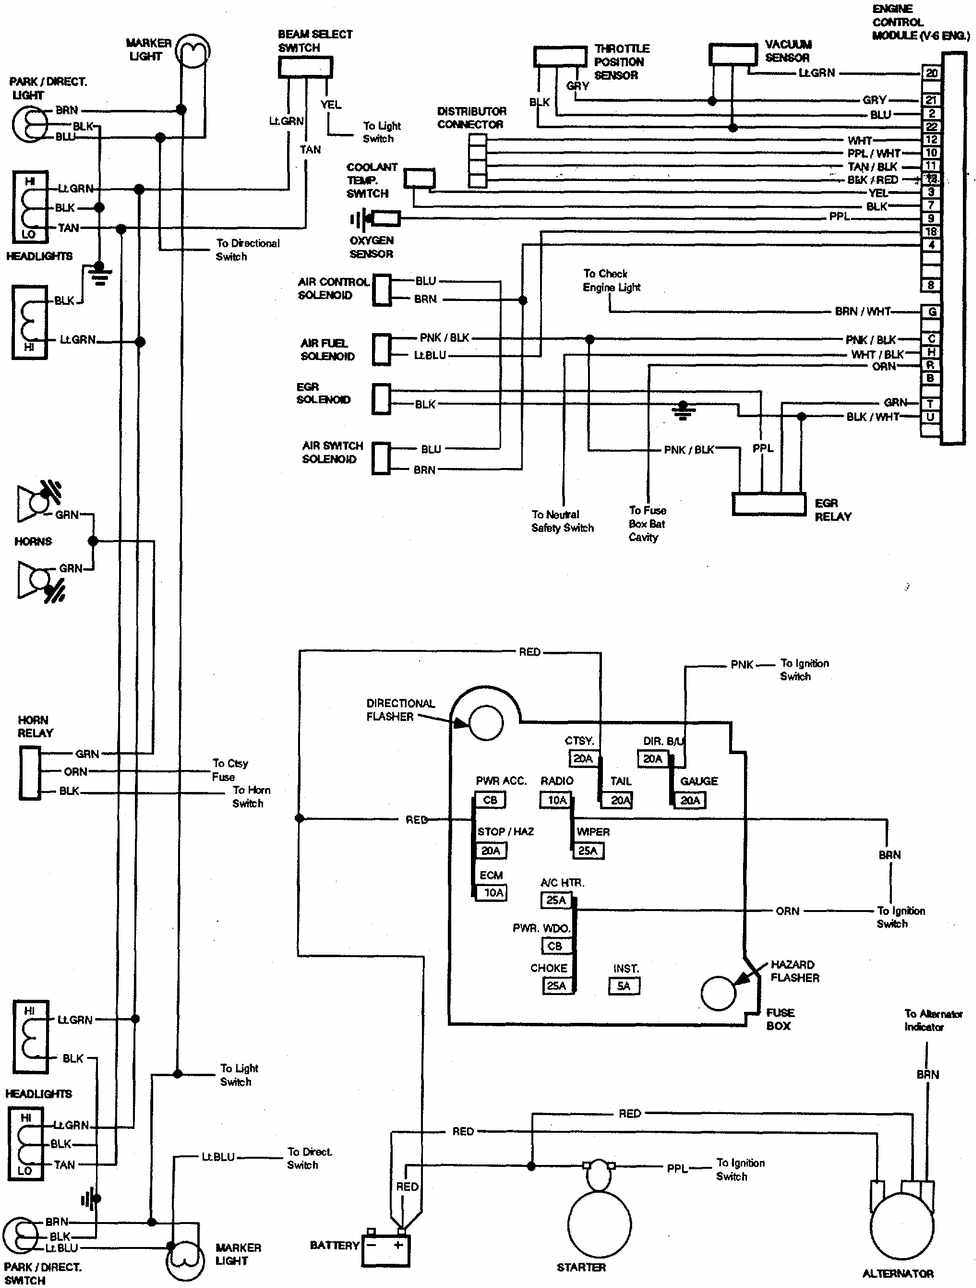 Wiring Diagram For 76 Chevy Trucks Trusted 1976 Chevrolet Truck Ignition Circuit Connection U2022 70